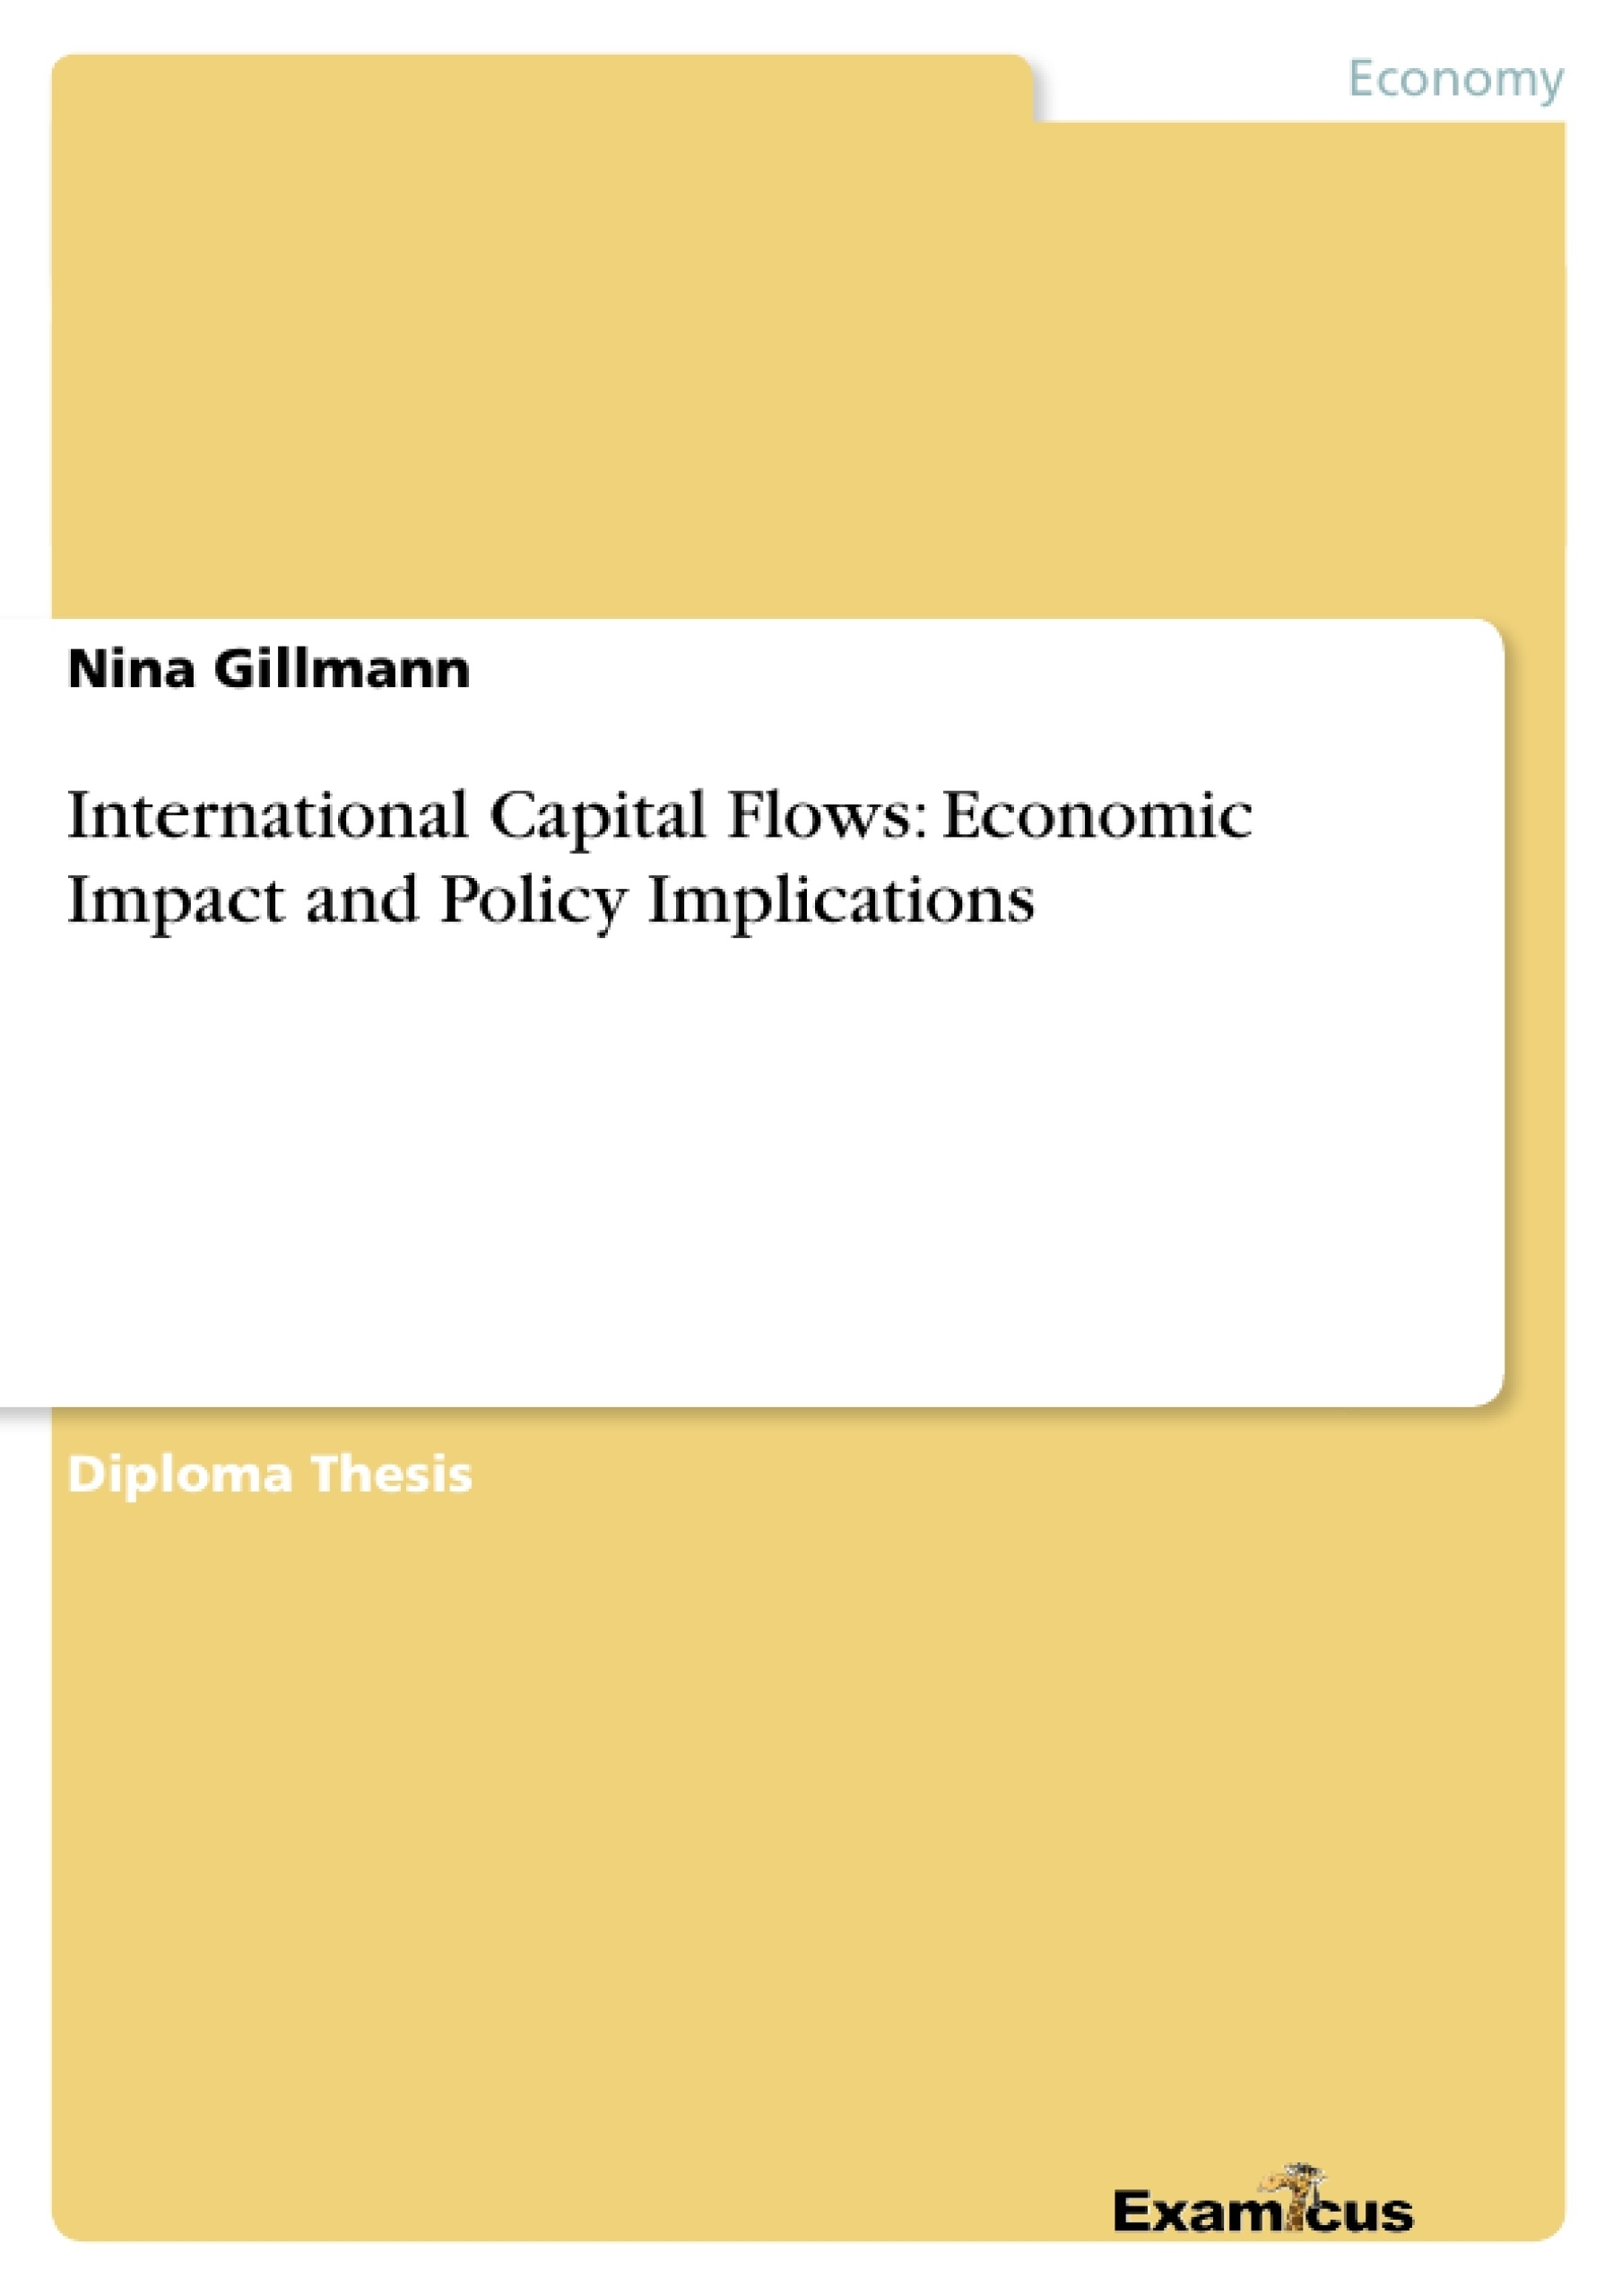 Title: International Capital Flows: Economic Impact and Policy Implications